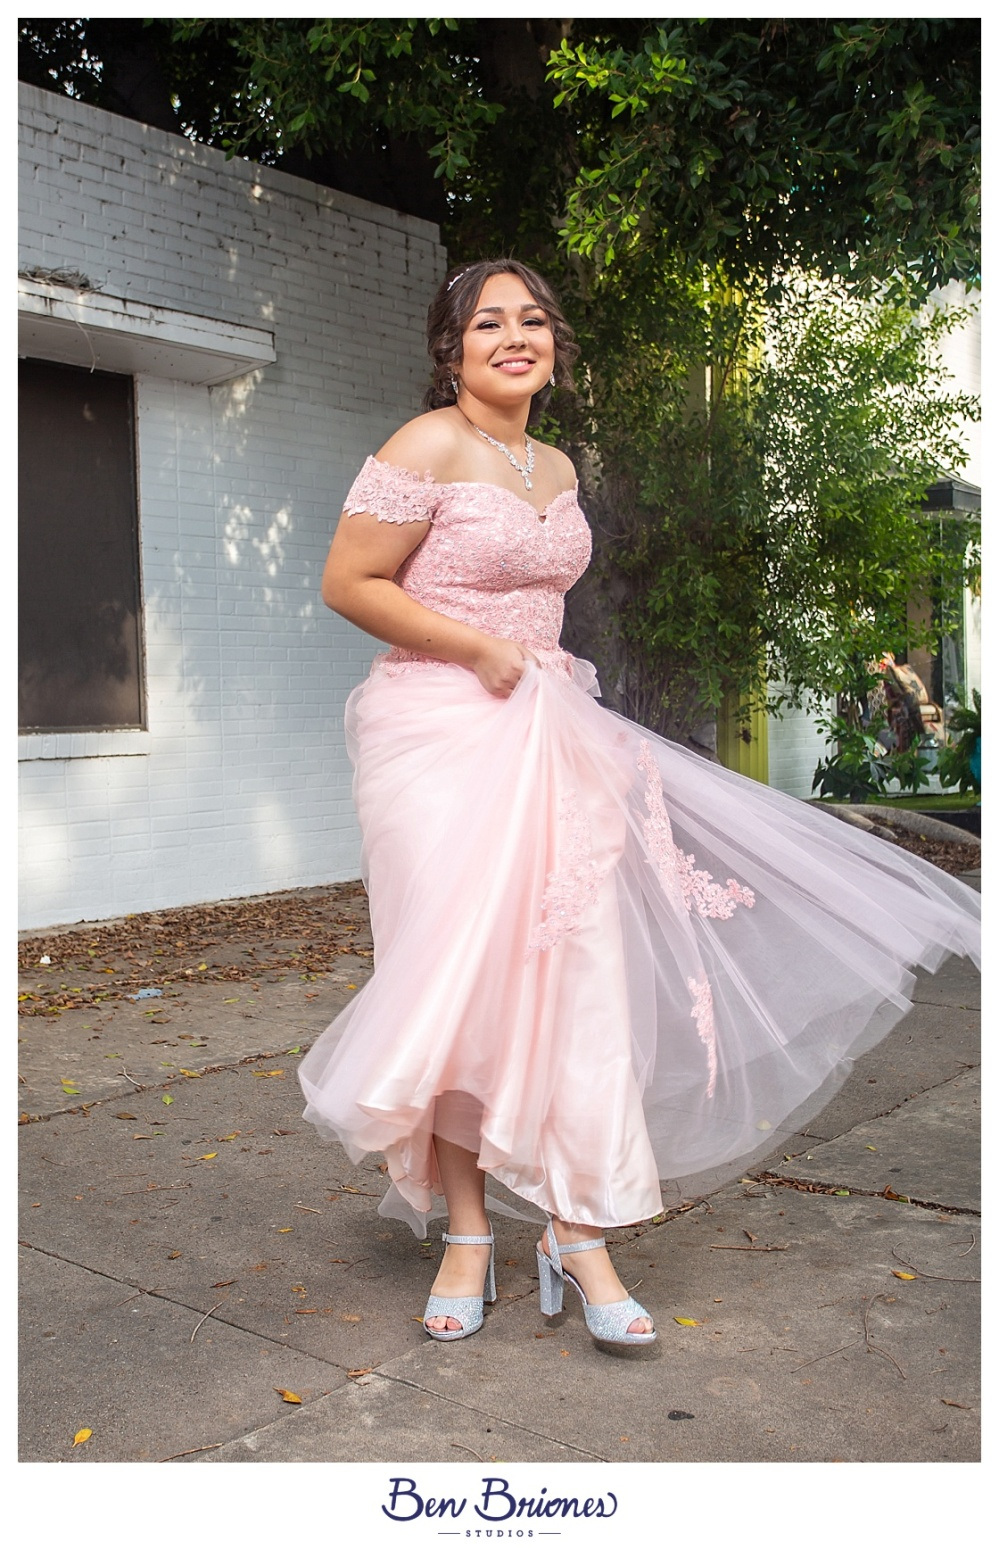 09.16.19_High Res_Dez Quince Portraits_BBP-5530_WEB